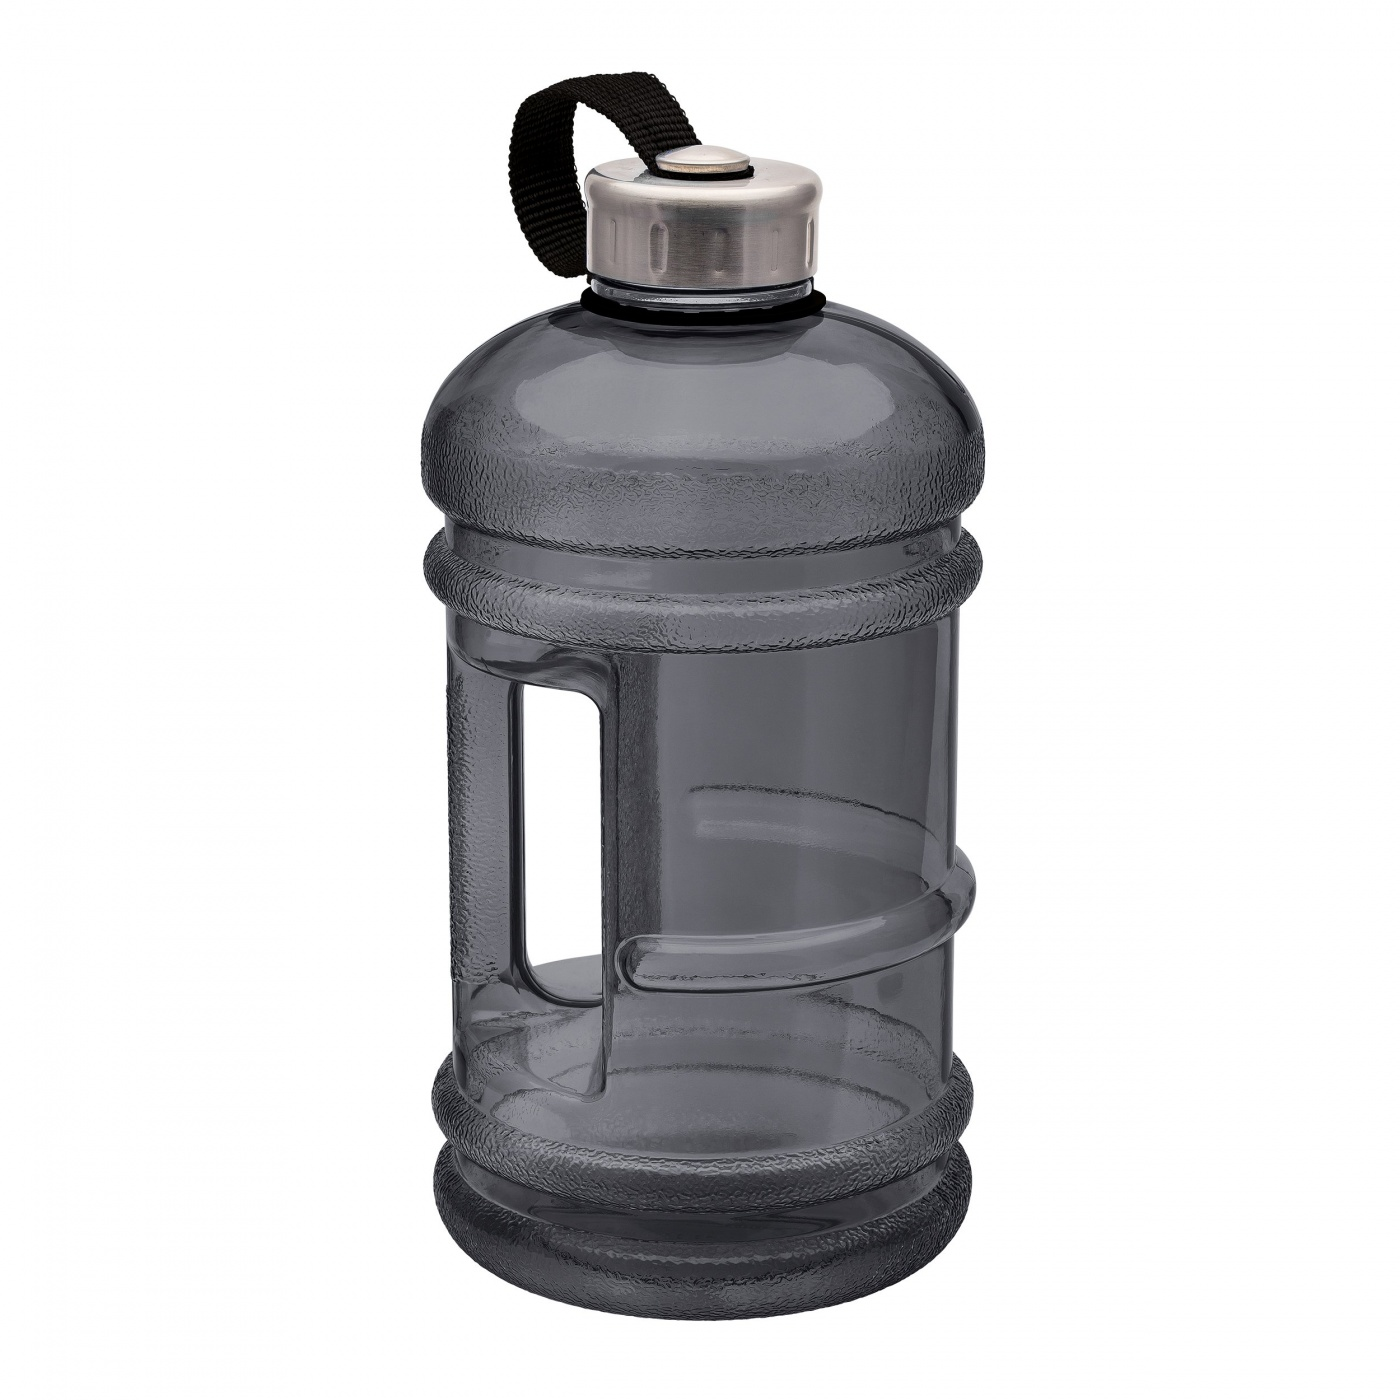 fitnessflasche xxl sportflasche trinkflasche 2 1 liter bpa frei ebay. Black Bedroom Furniture Sets. Home Design Ideas